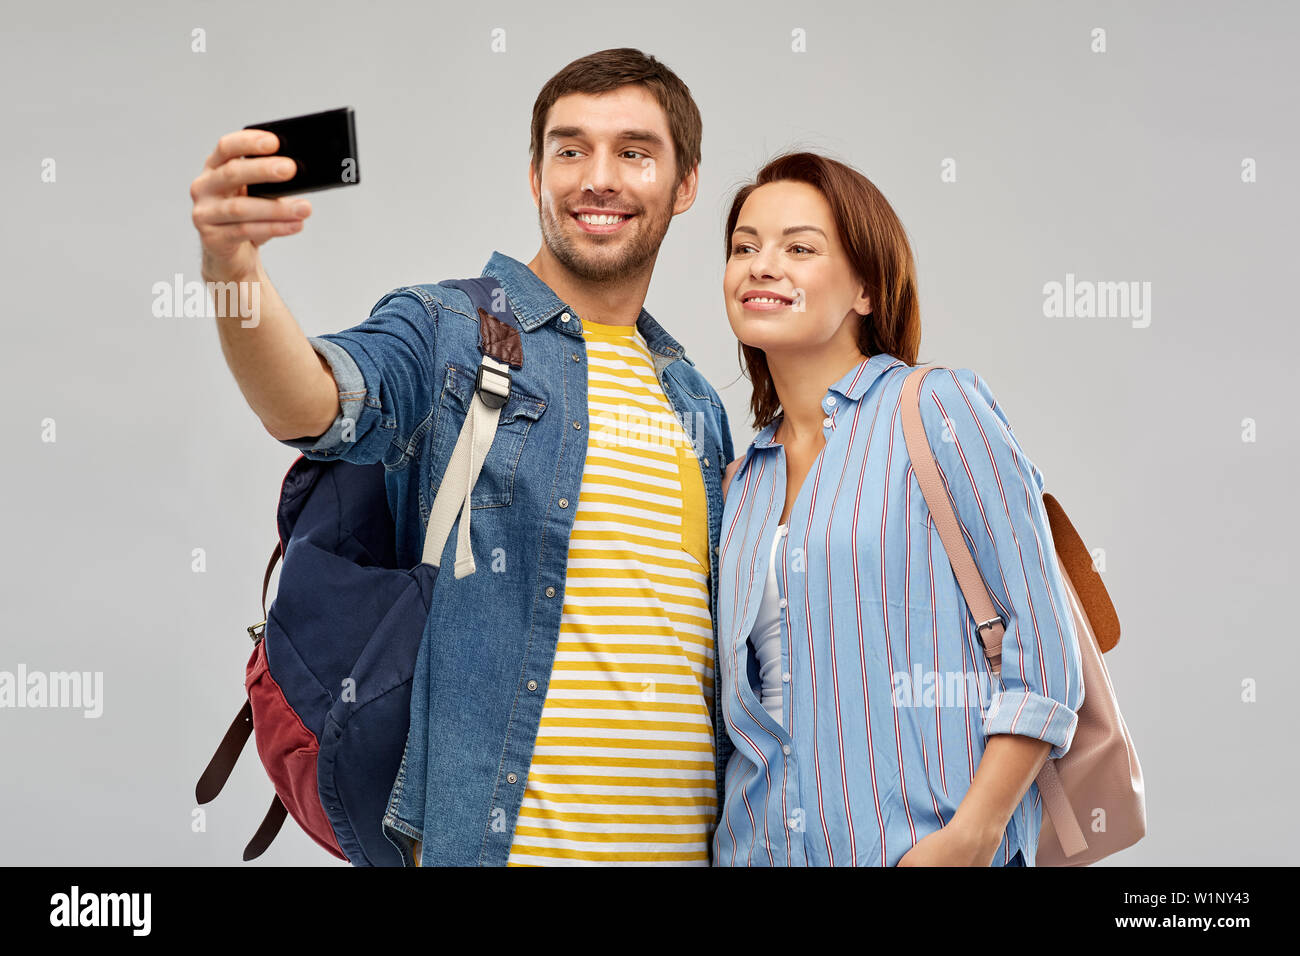 couple of tourists taking selfie by smartphone Stock Photo